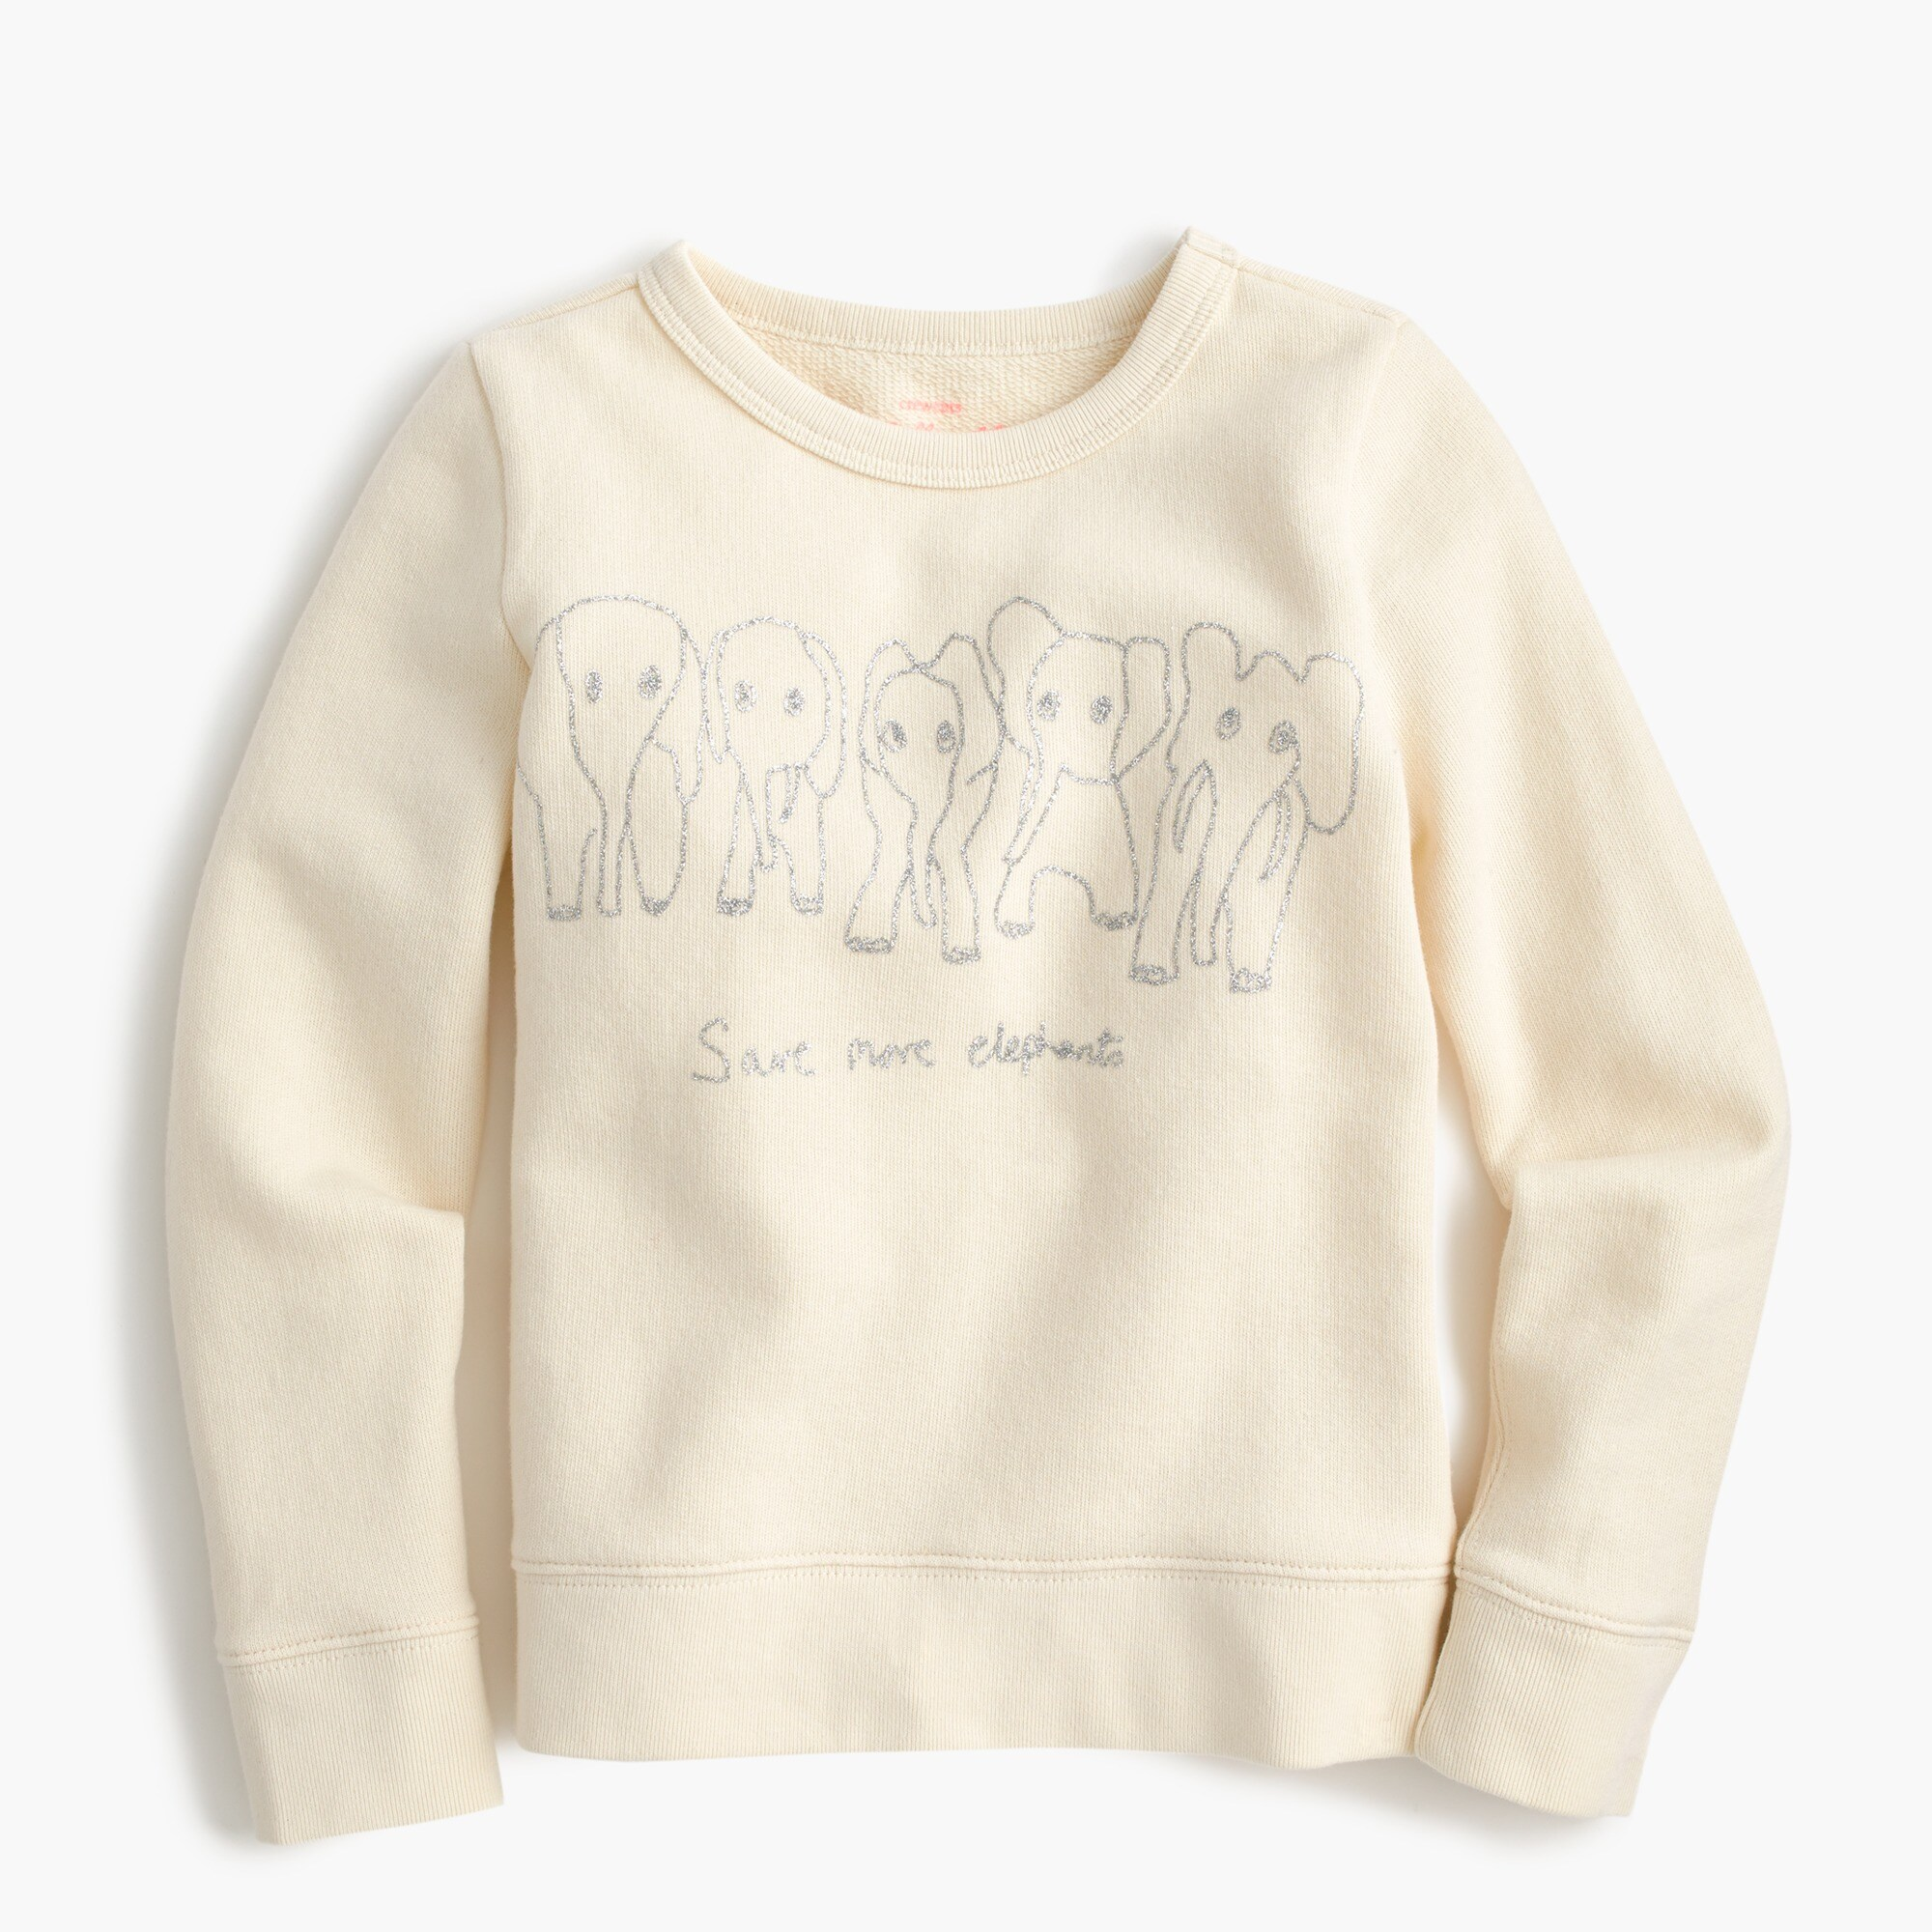 girls' girls' crewcuts for david sheldrick wildlife trust save more elephants sweatshirt - girls' tops